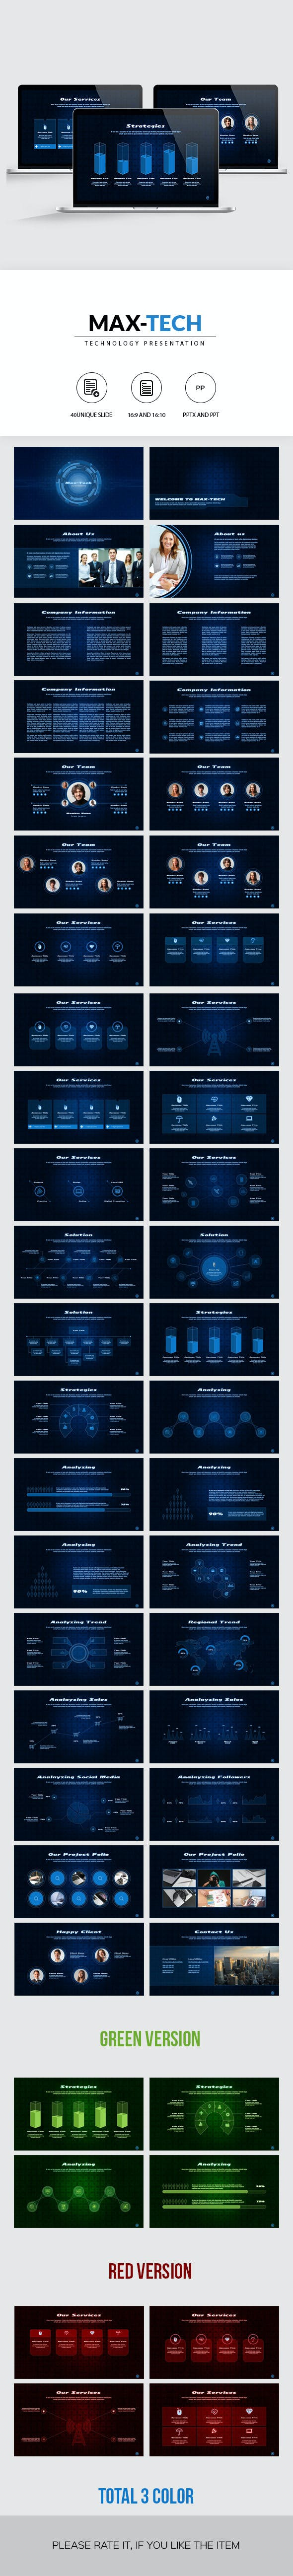 max tech technology powerpoint presentation by smmr graphicriver